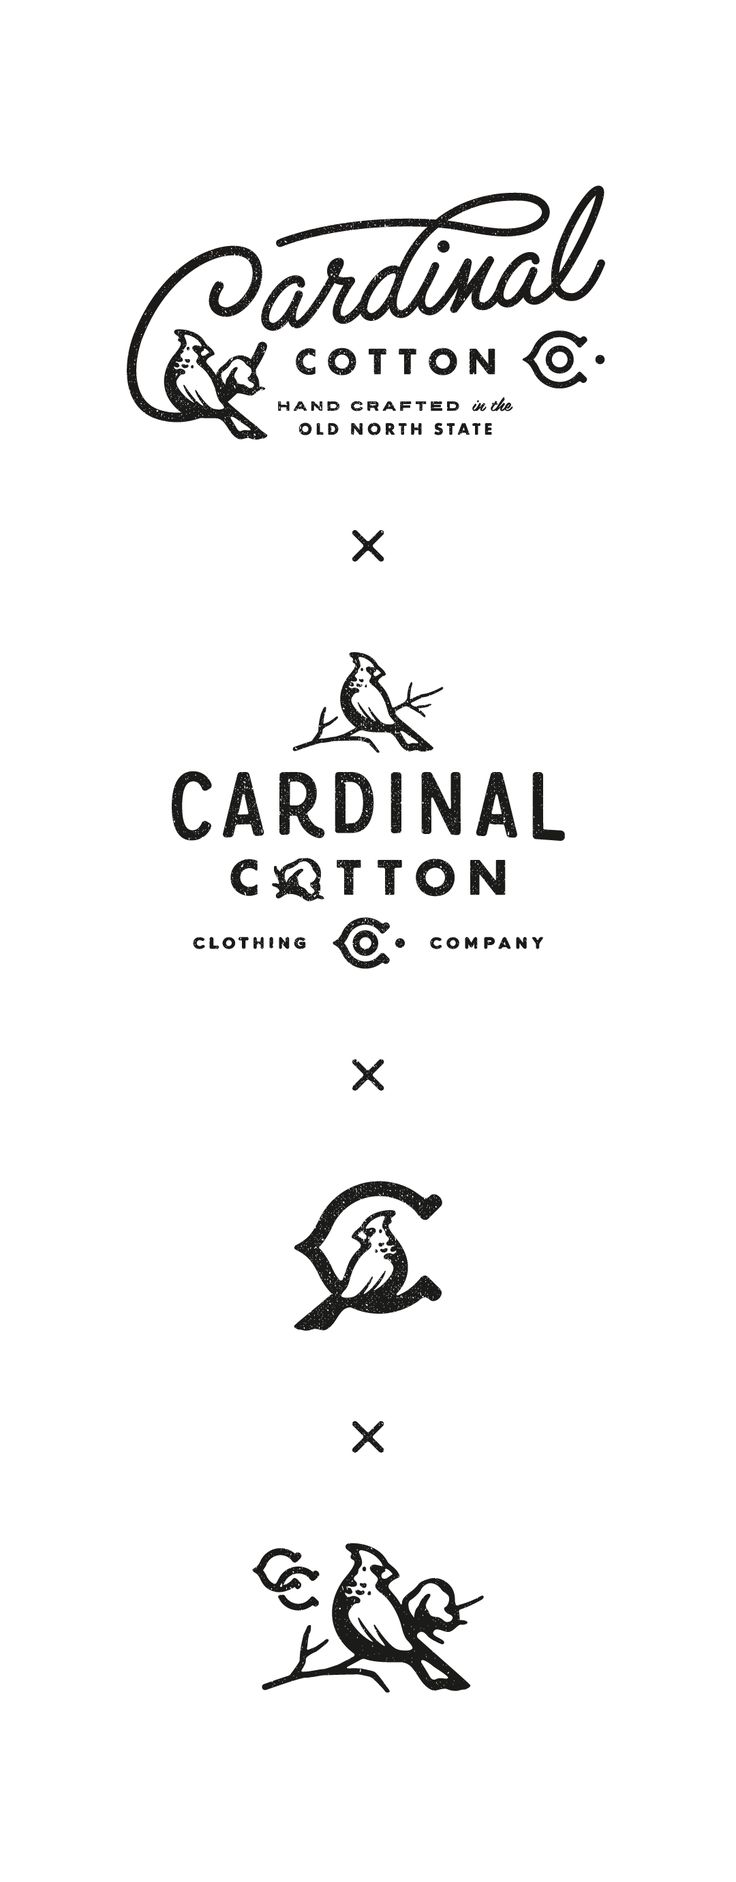 Cardinal Cotton logo variations